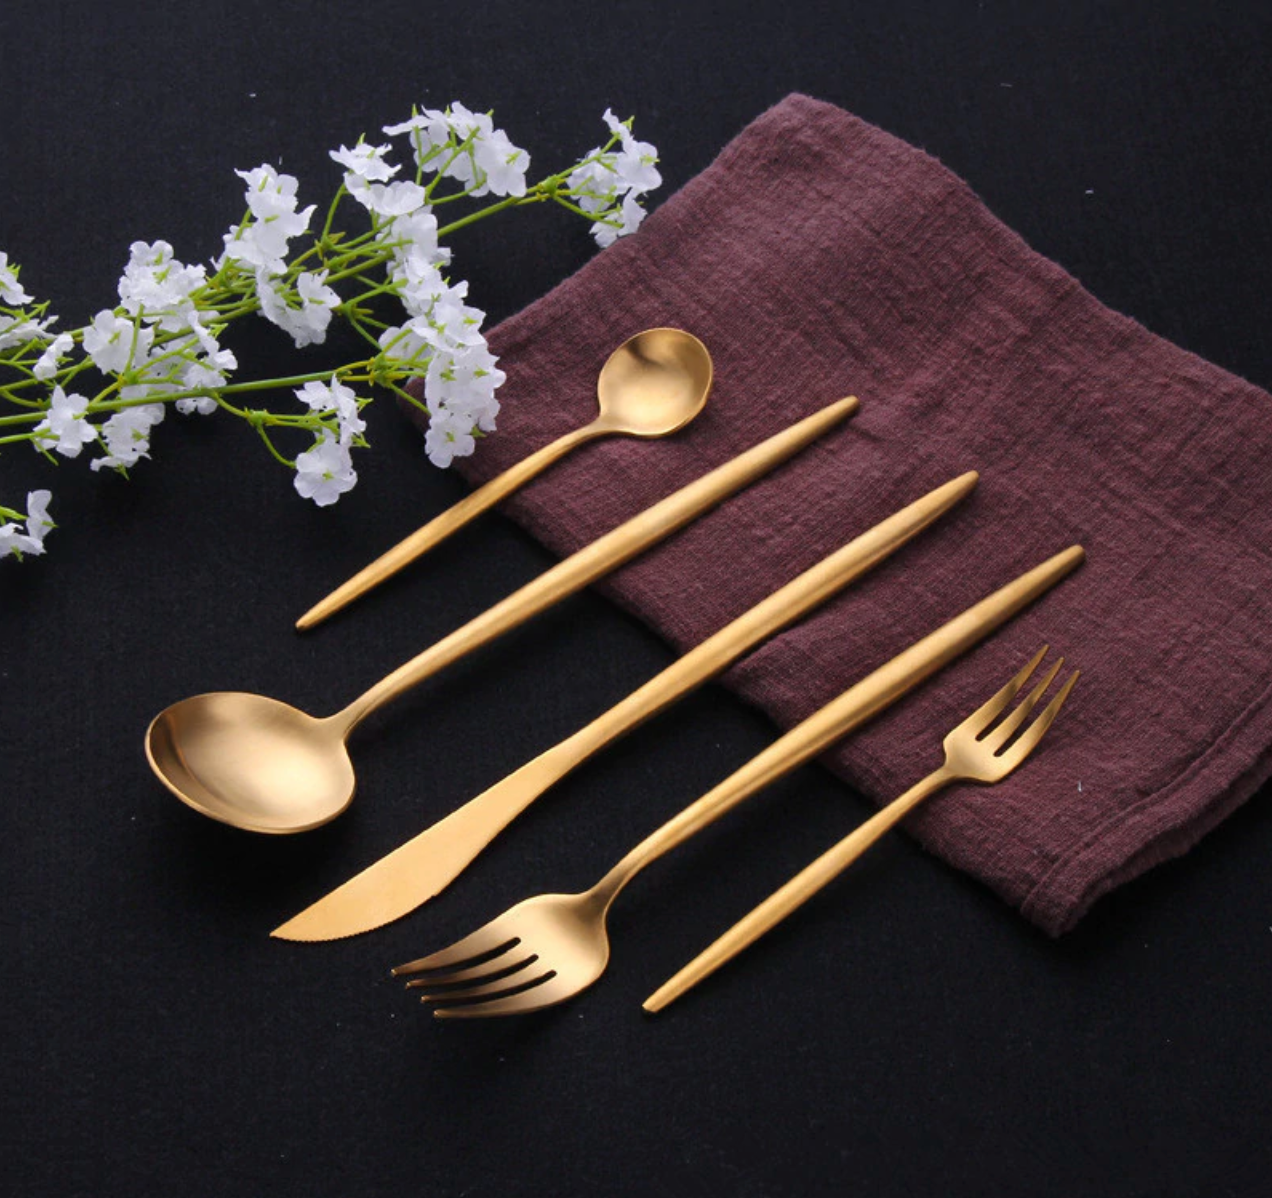 Stylish Gold Cutlery